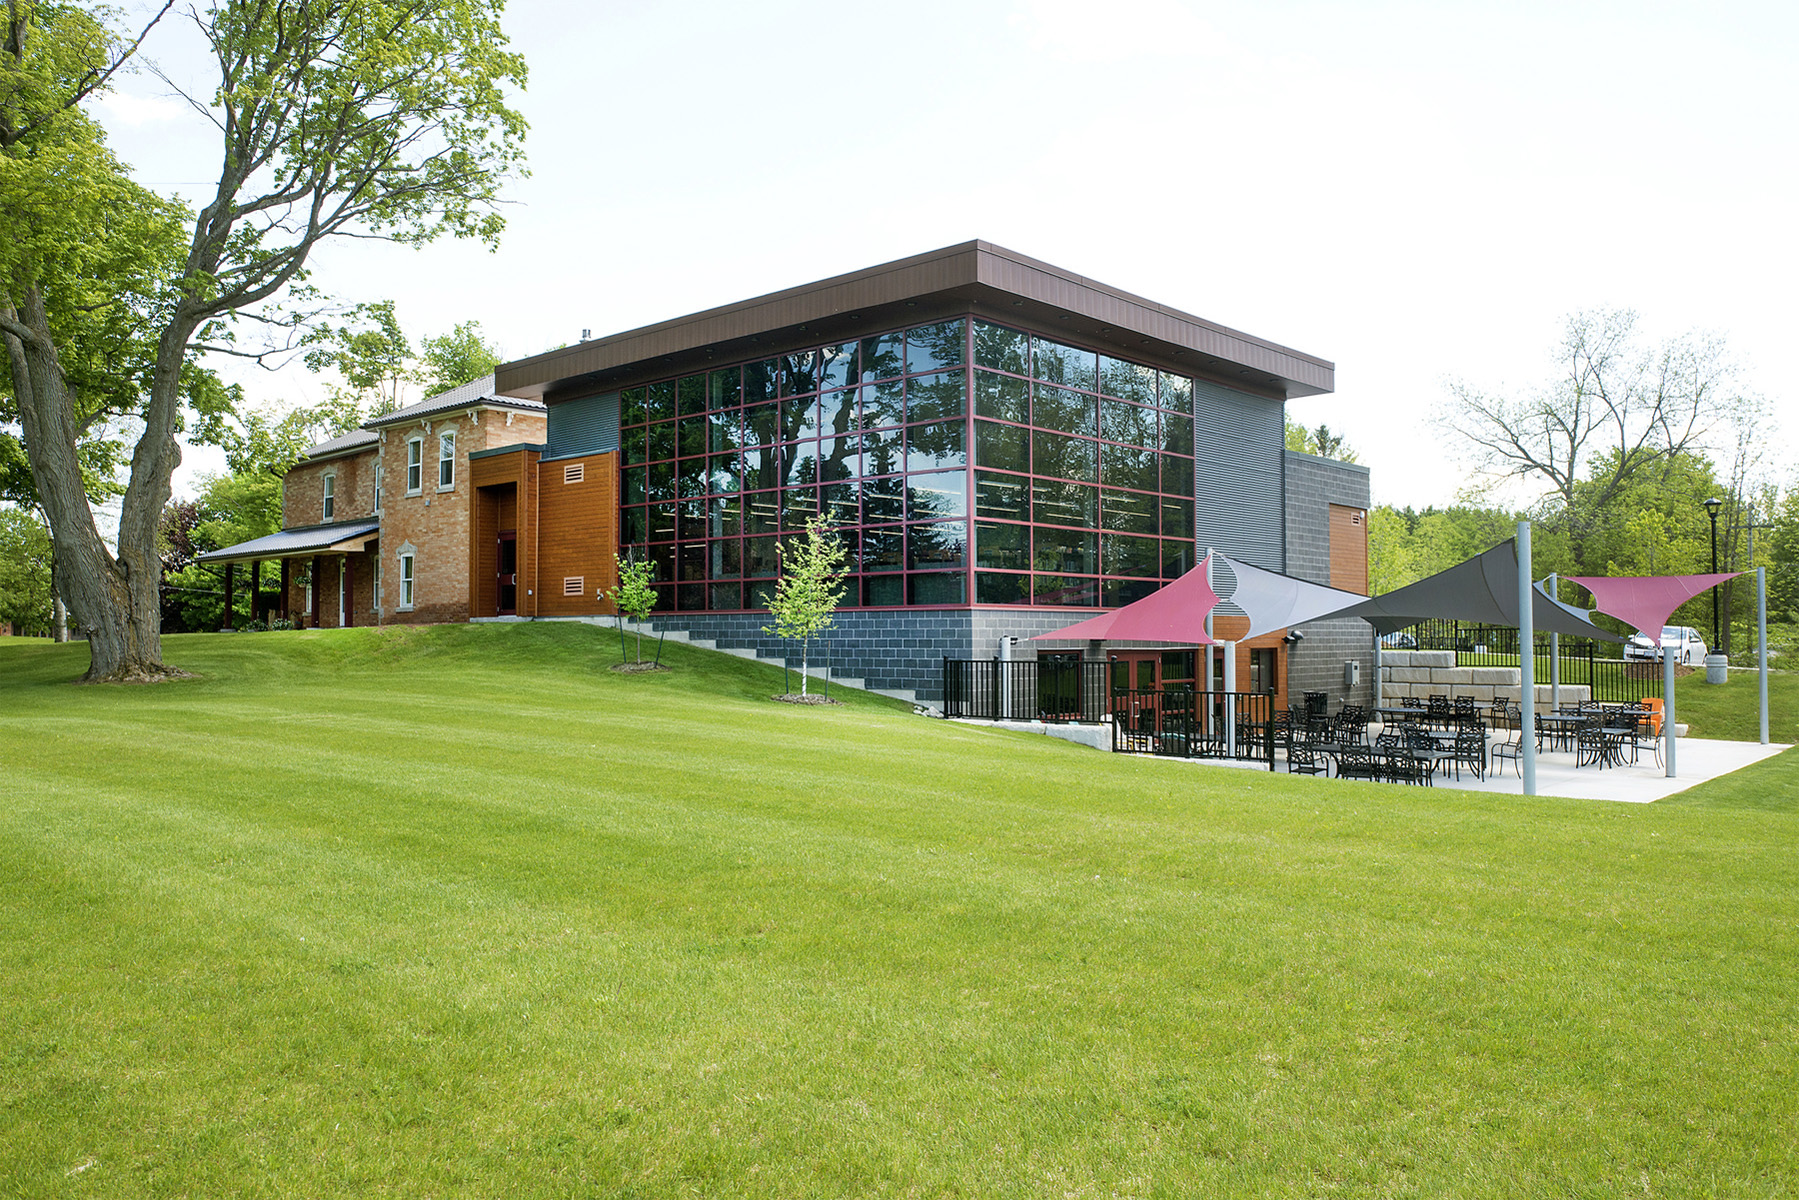 View of double height glazed addition from green lawn with canopy covered patio seating